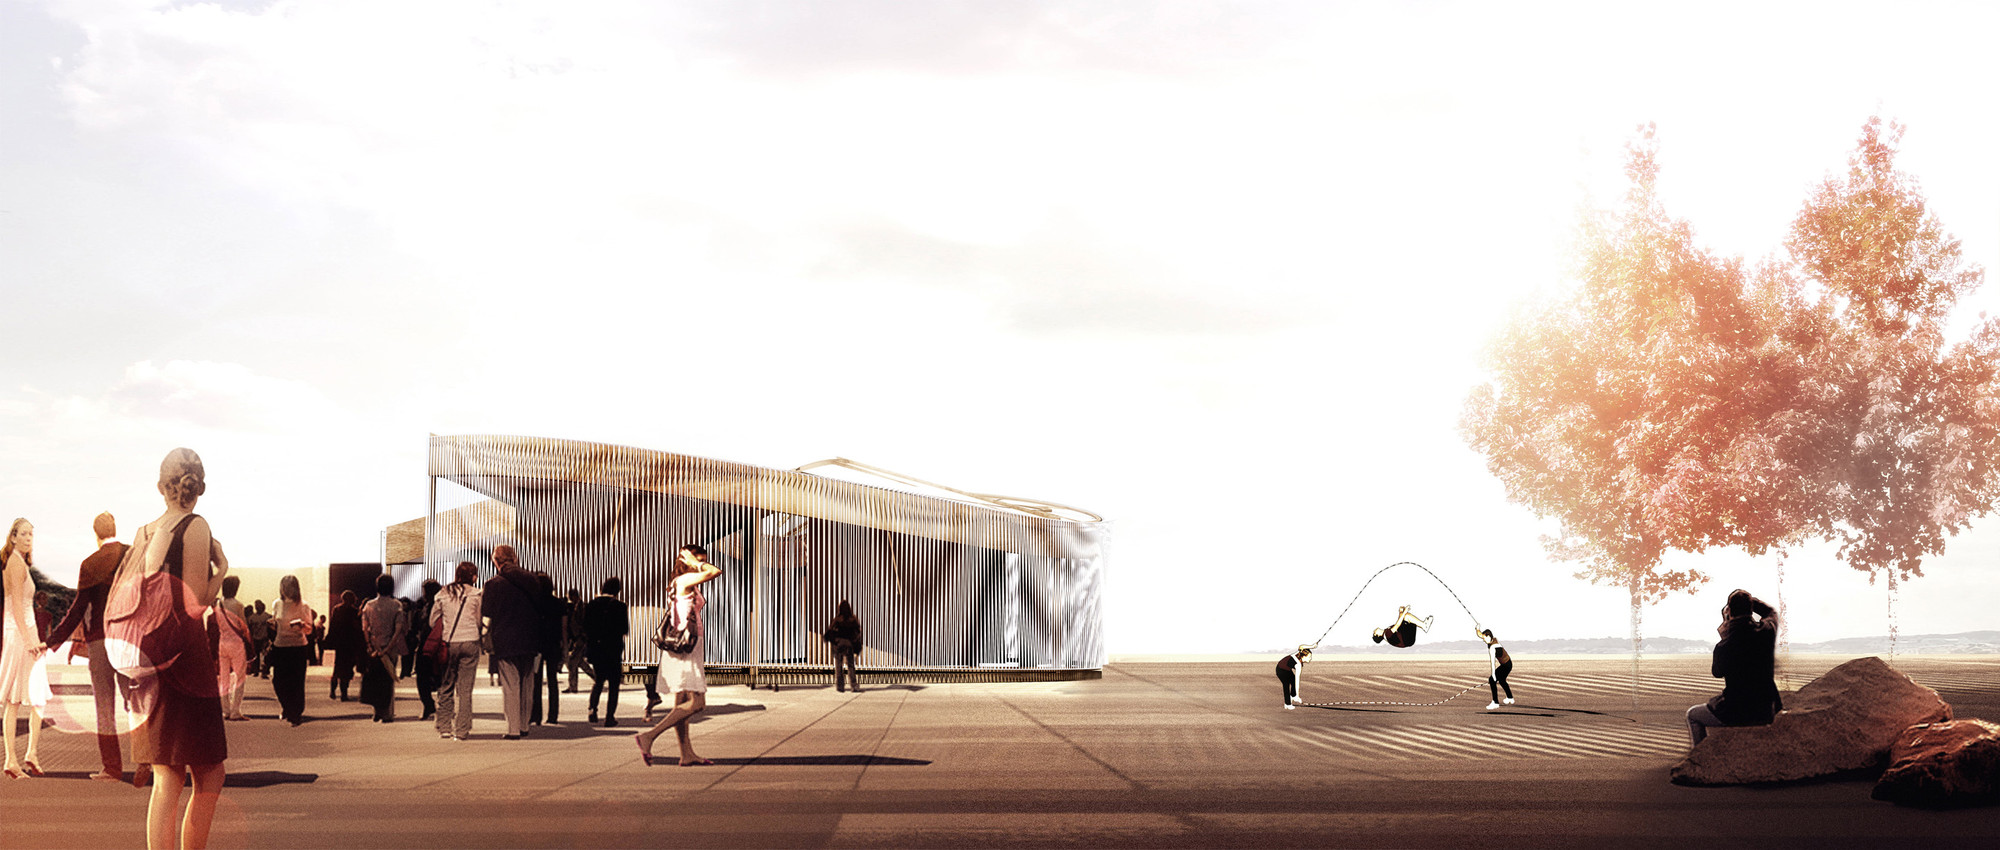 Weaving In-Tension (WIT) Pavilion: Operalab Competition Entry / Meta- Studio, Courtesy of Meta- Studio